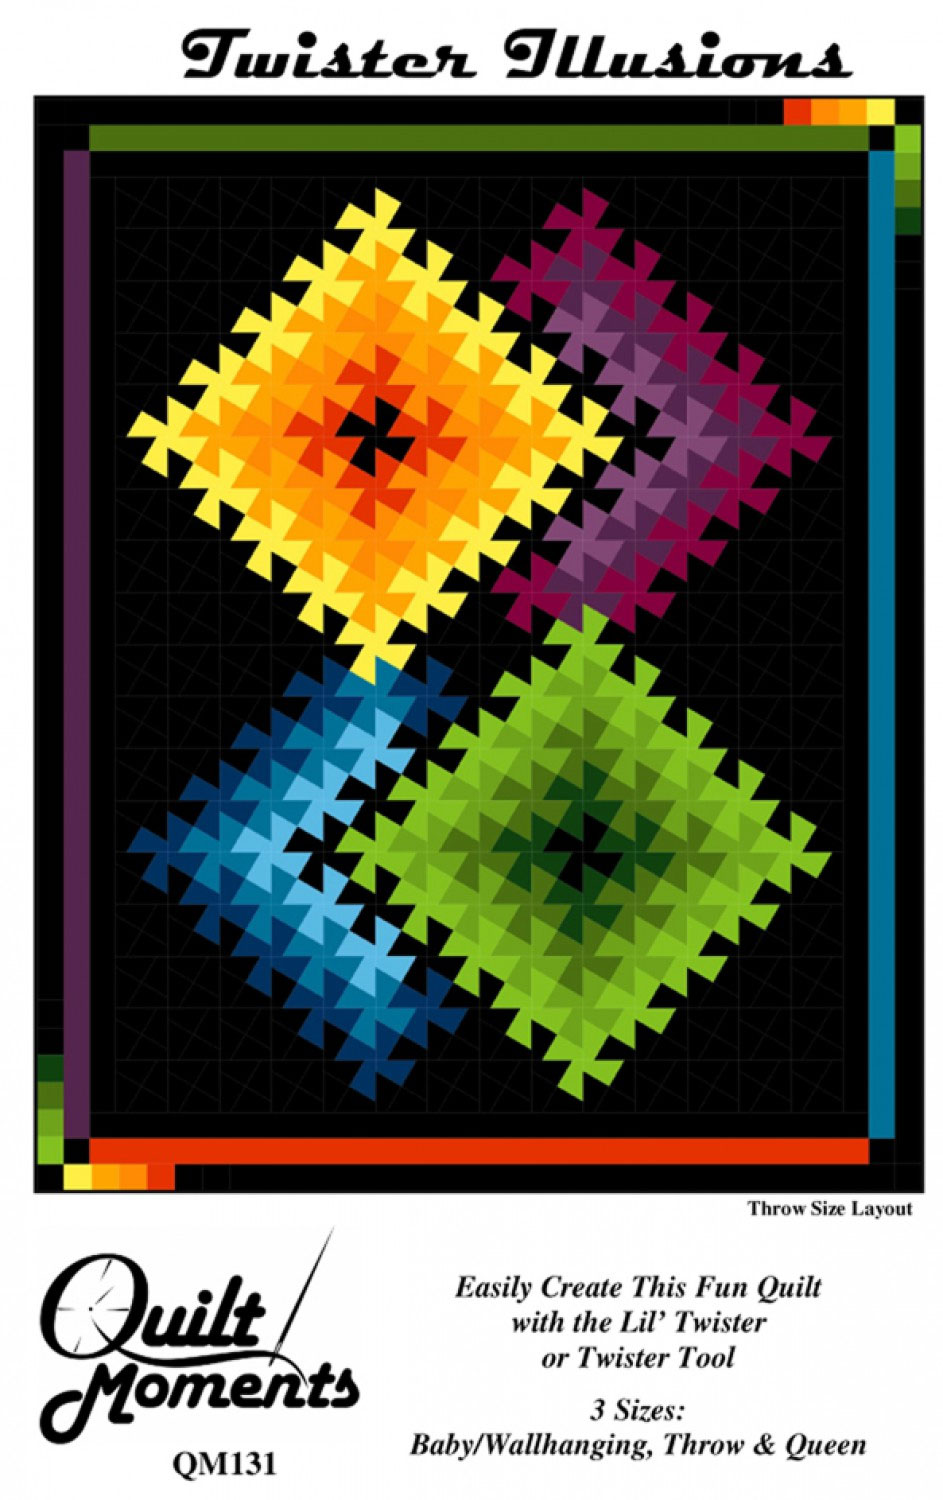 Twister-Illusions-sewing-pattern-Marilyn-Foreman-Quilt-Moments-front